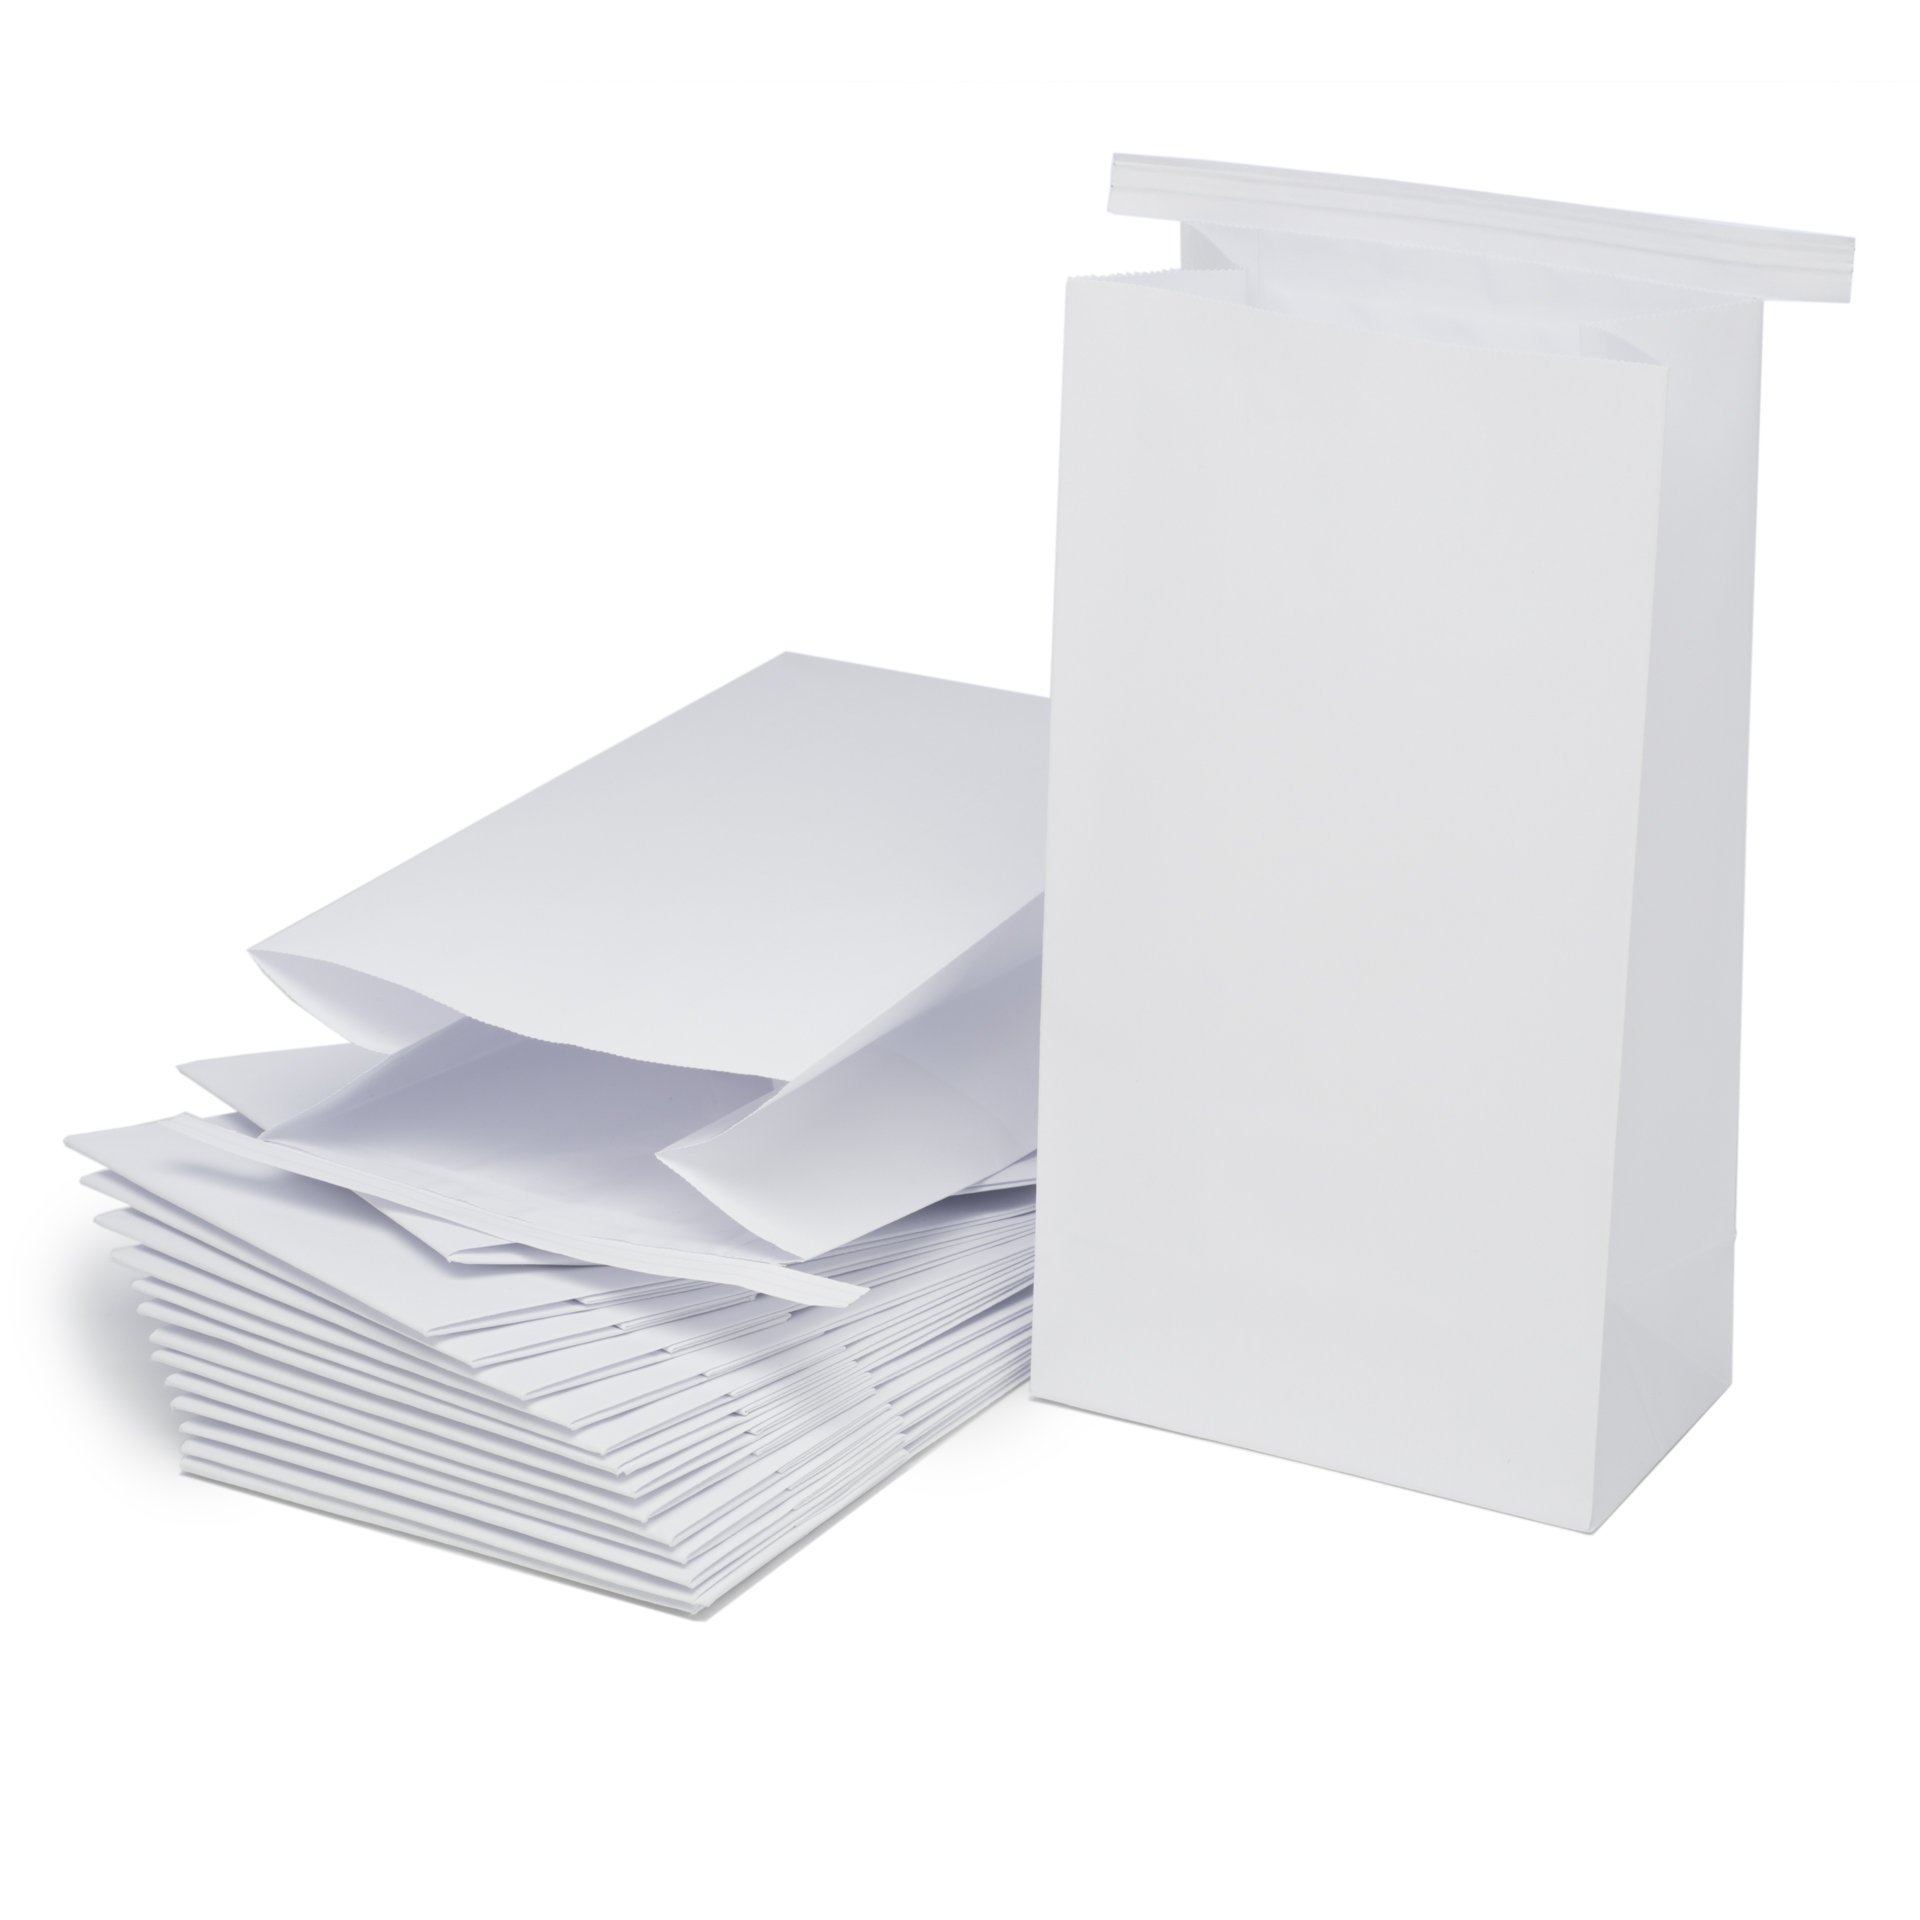 Classic White Vomit/Barf Bags - Travel Motion & Morning Sickness Bags (25/Pk) by The Barf Boutique (Image #3)